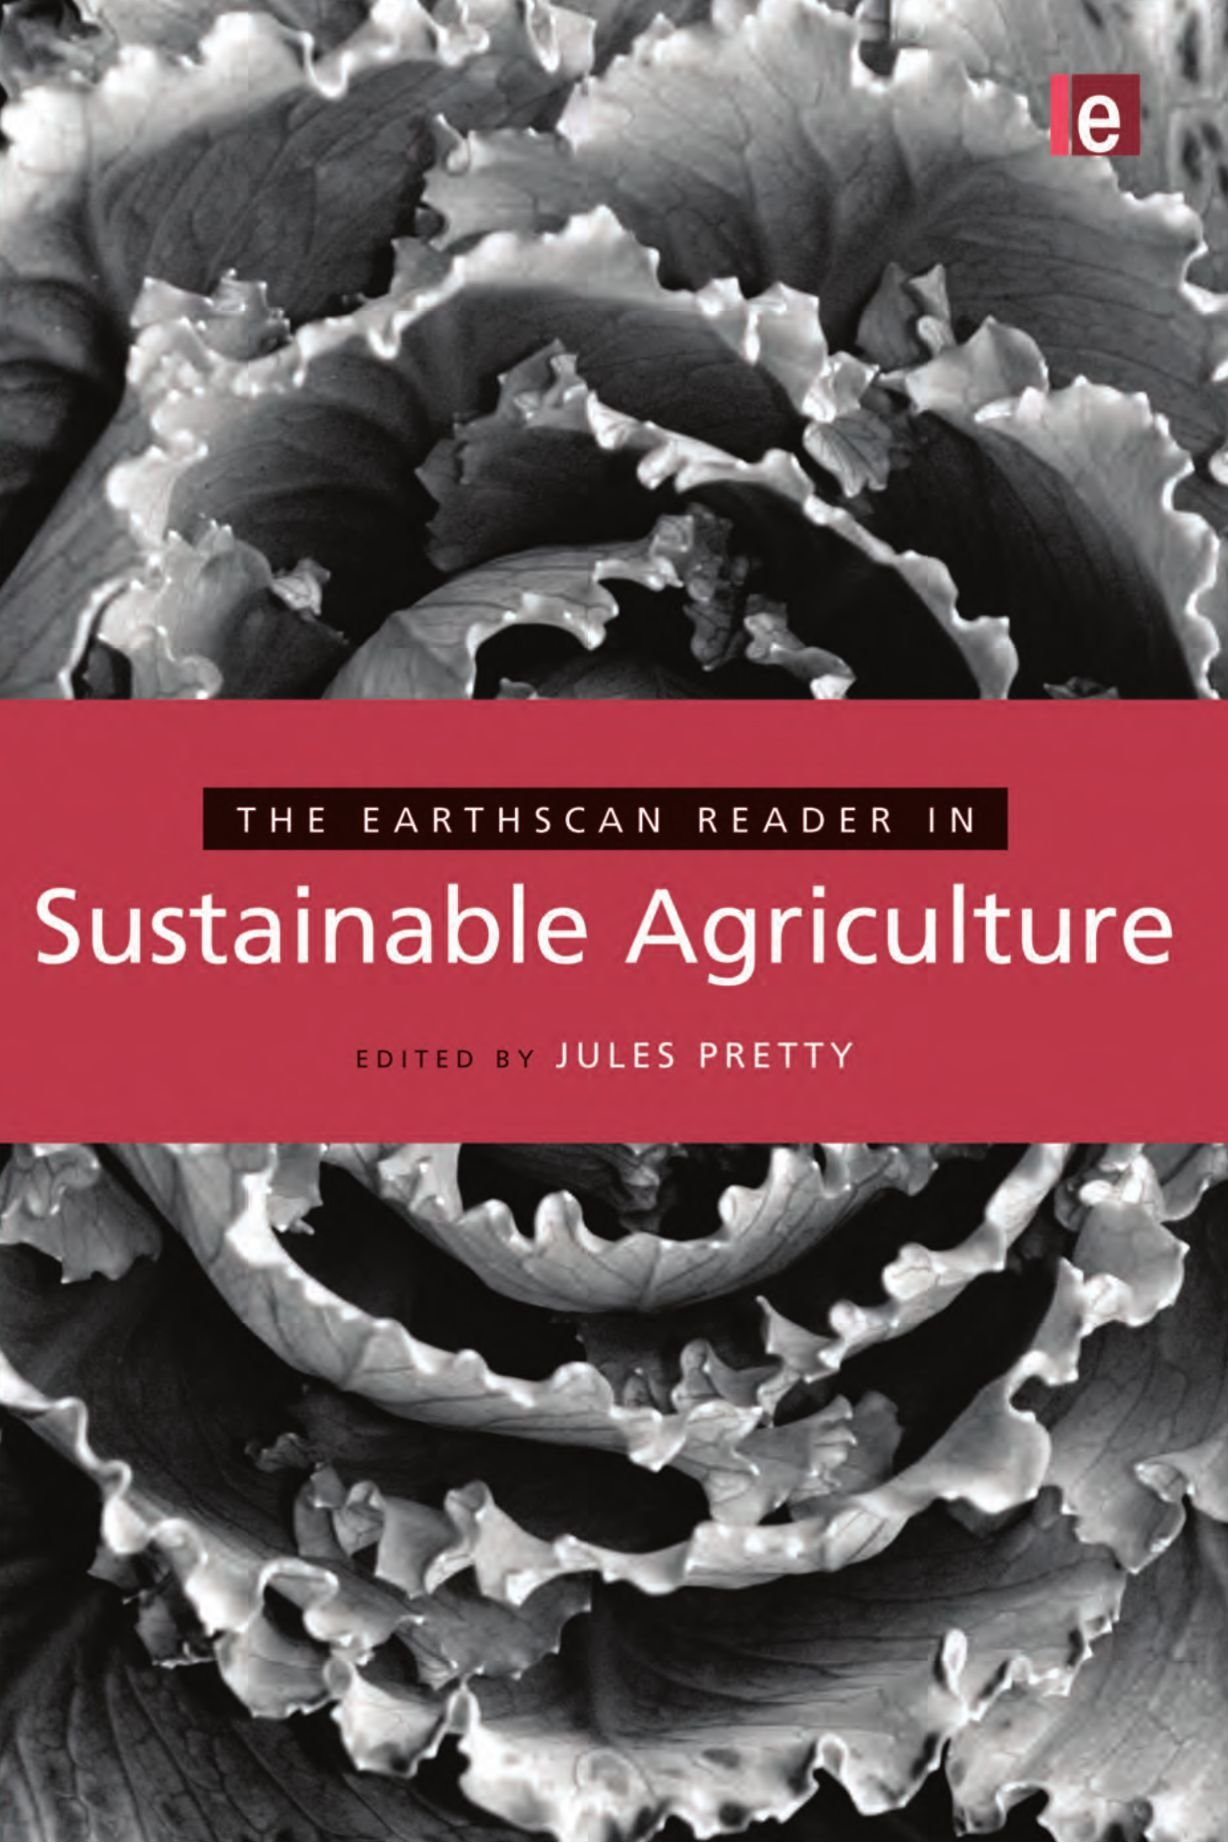 The Earthscan Reader in Sustainable Agriculture (Earthscan Reader Series)